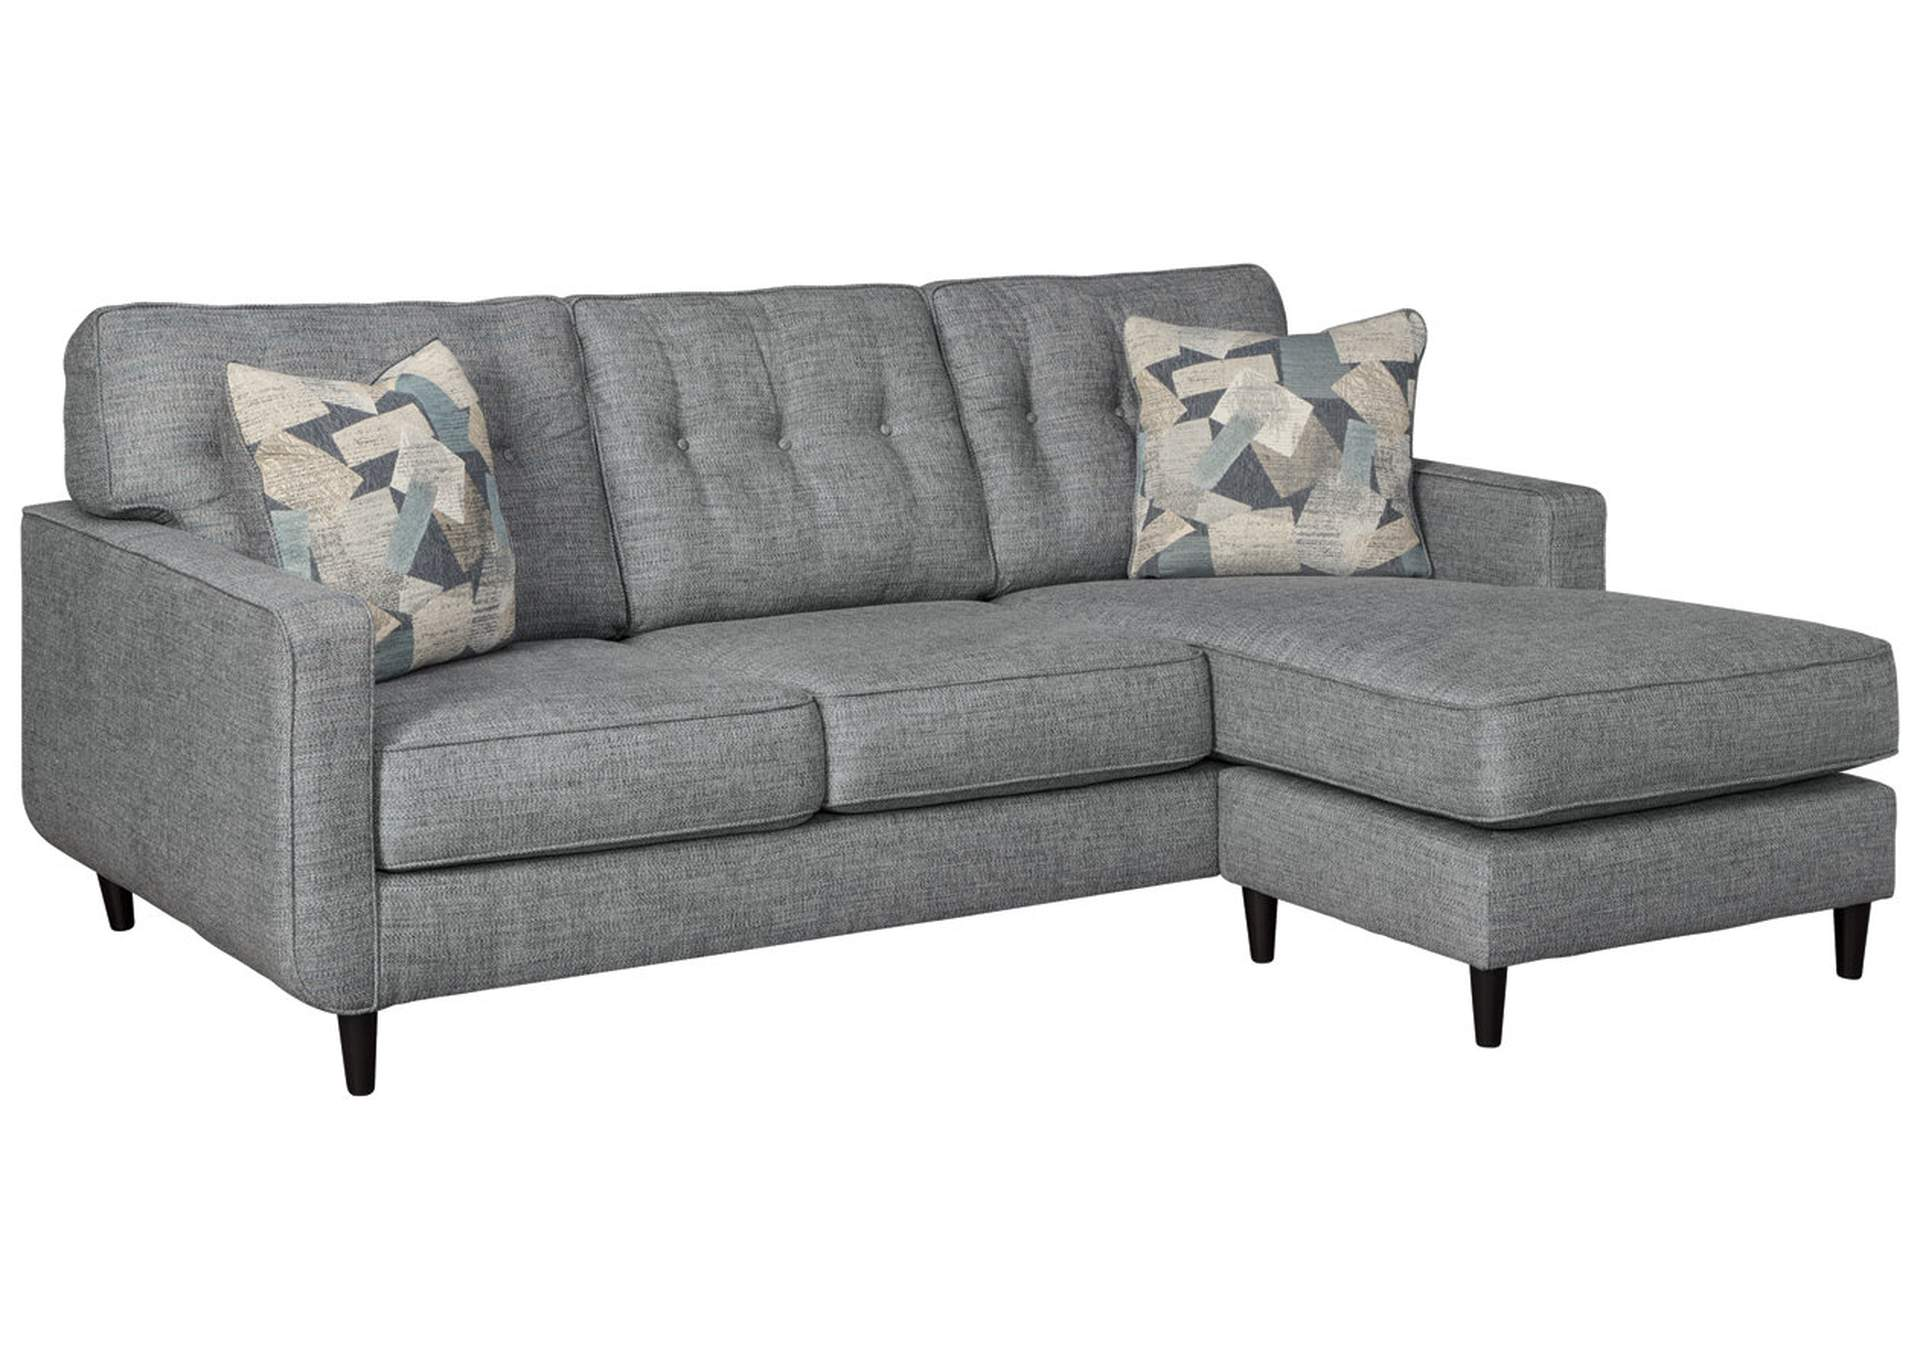 Mandon River Sofa Chaise,Benchcraft